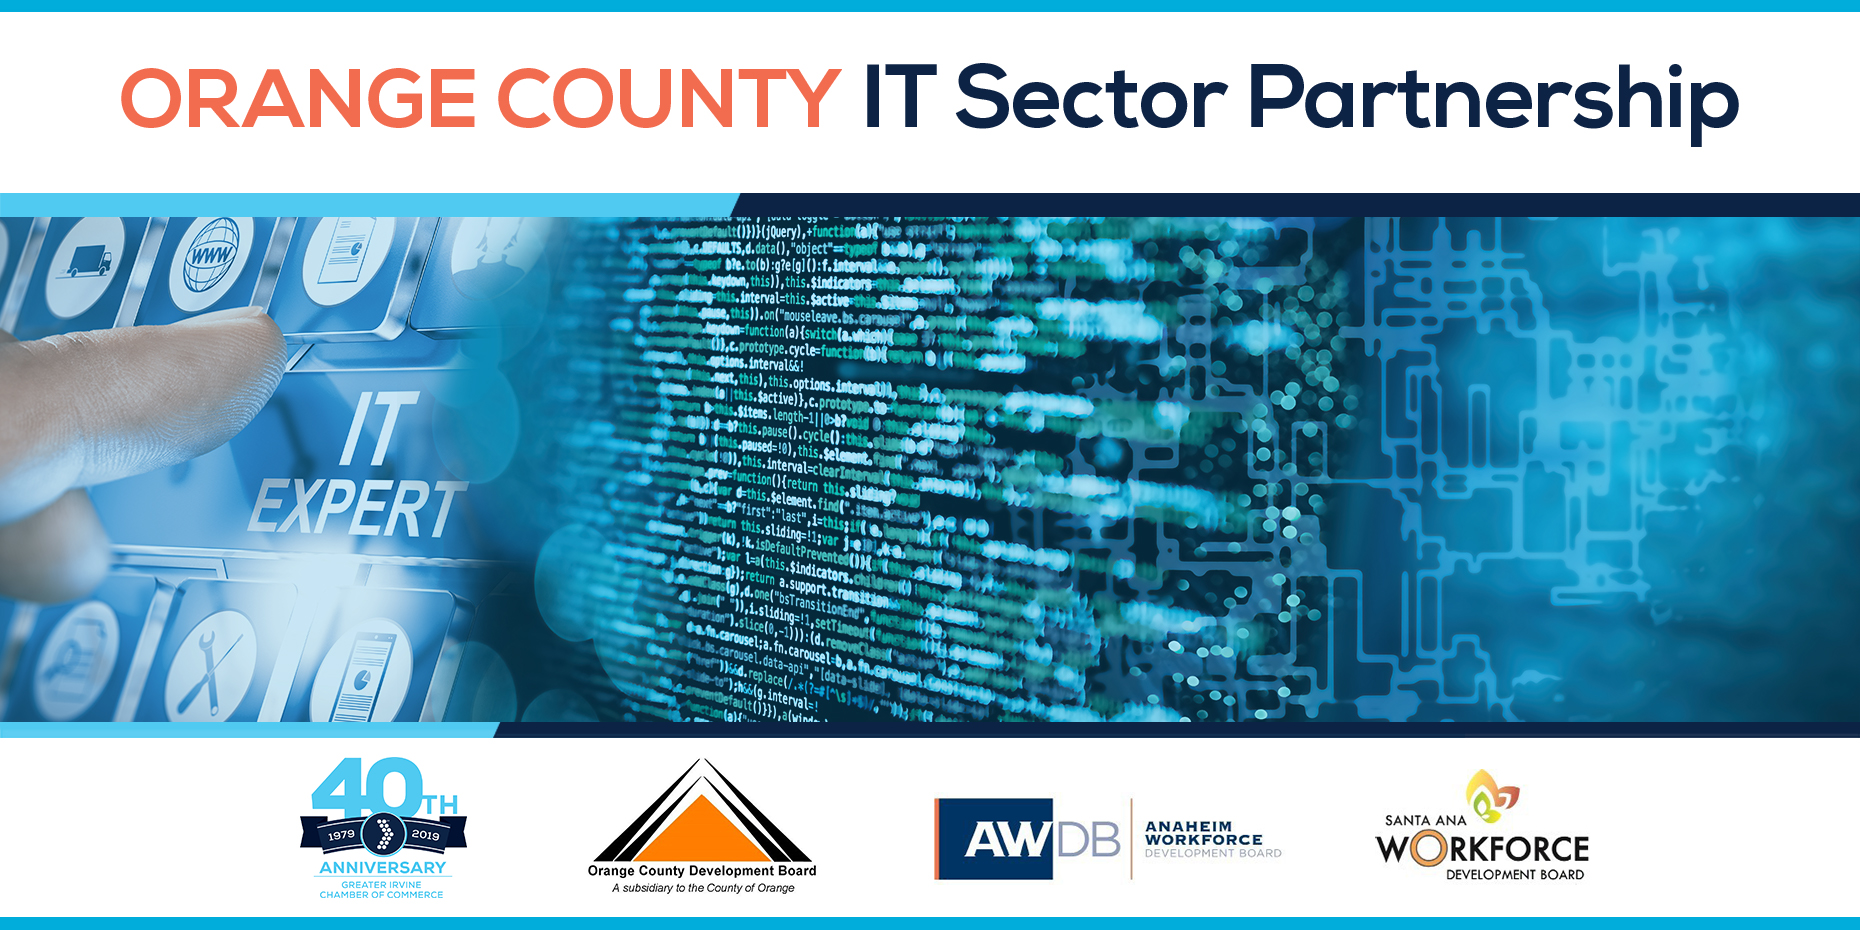 Orange County IT Sector Partnership